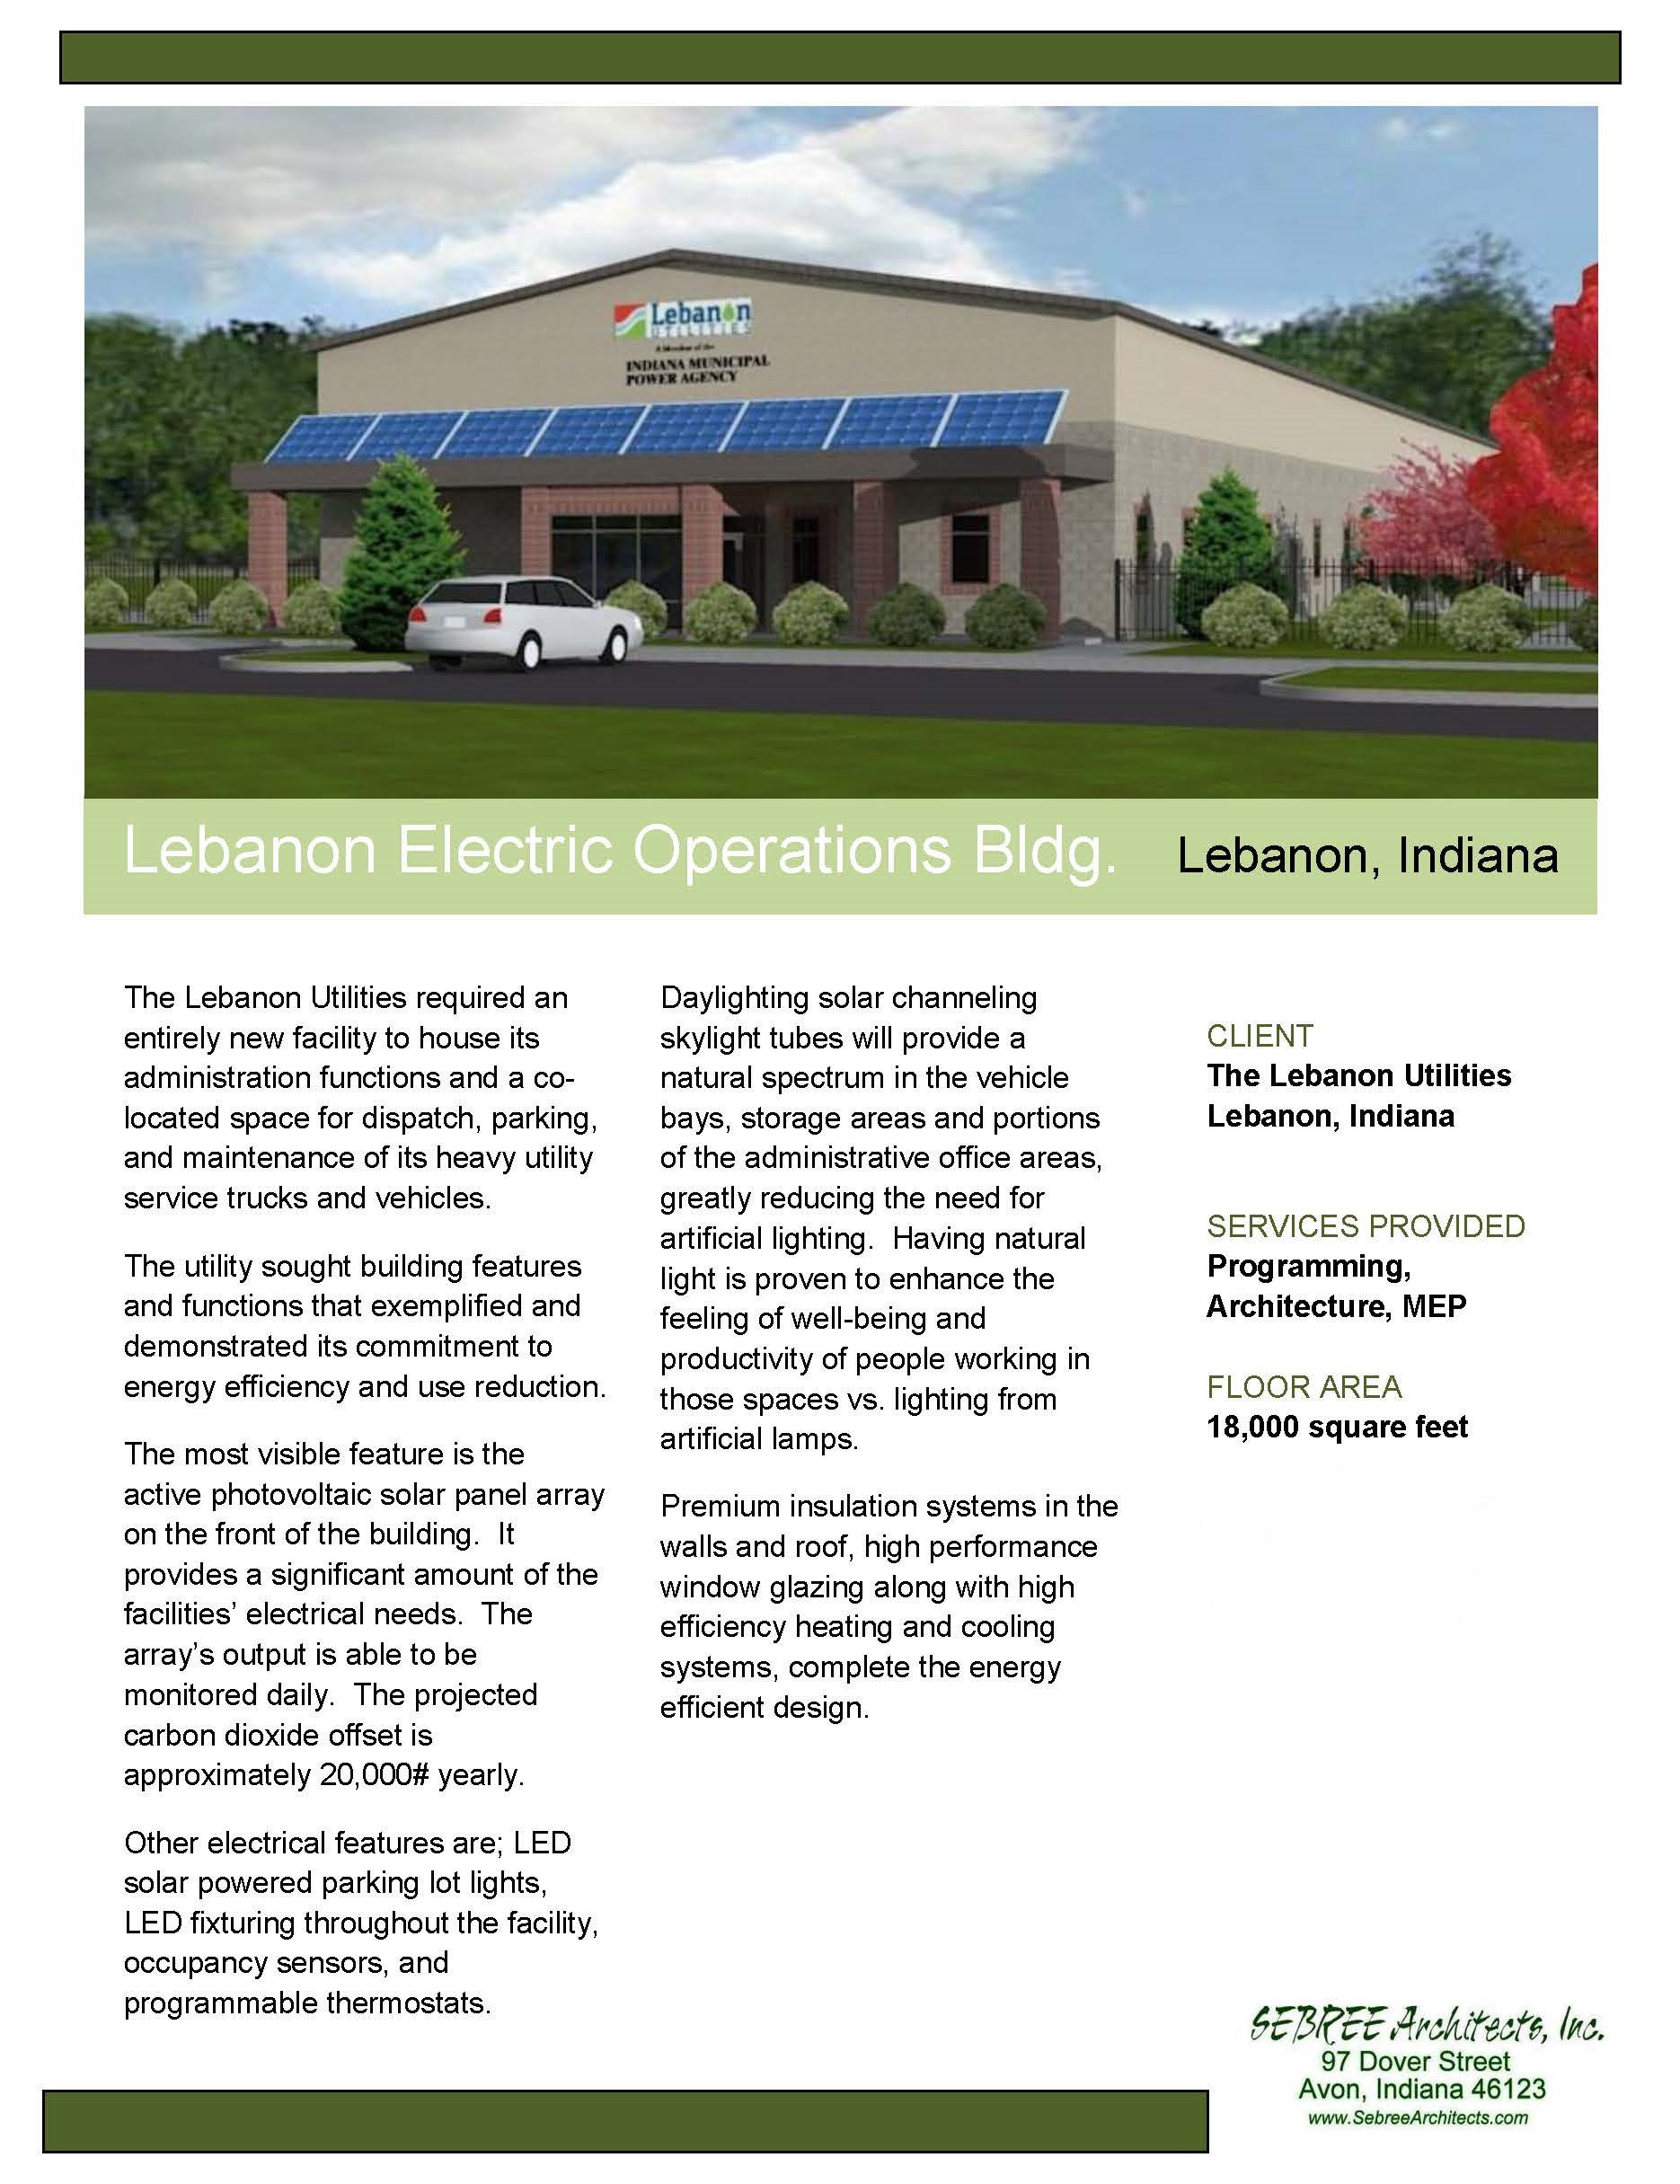 Electric Operations Building